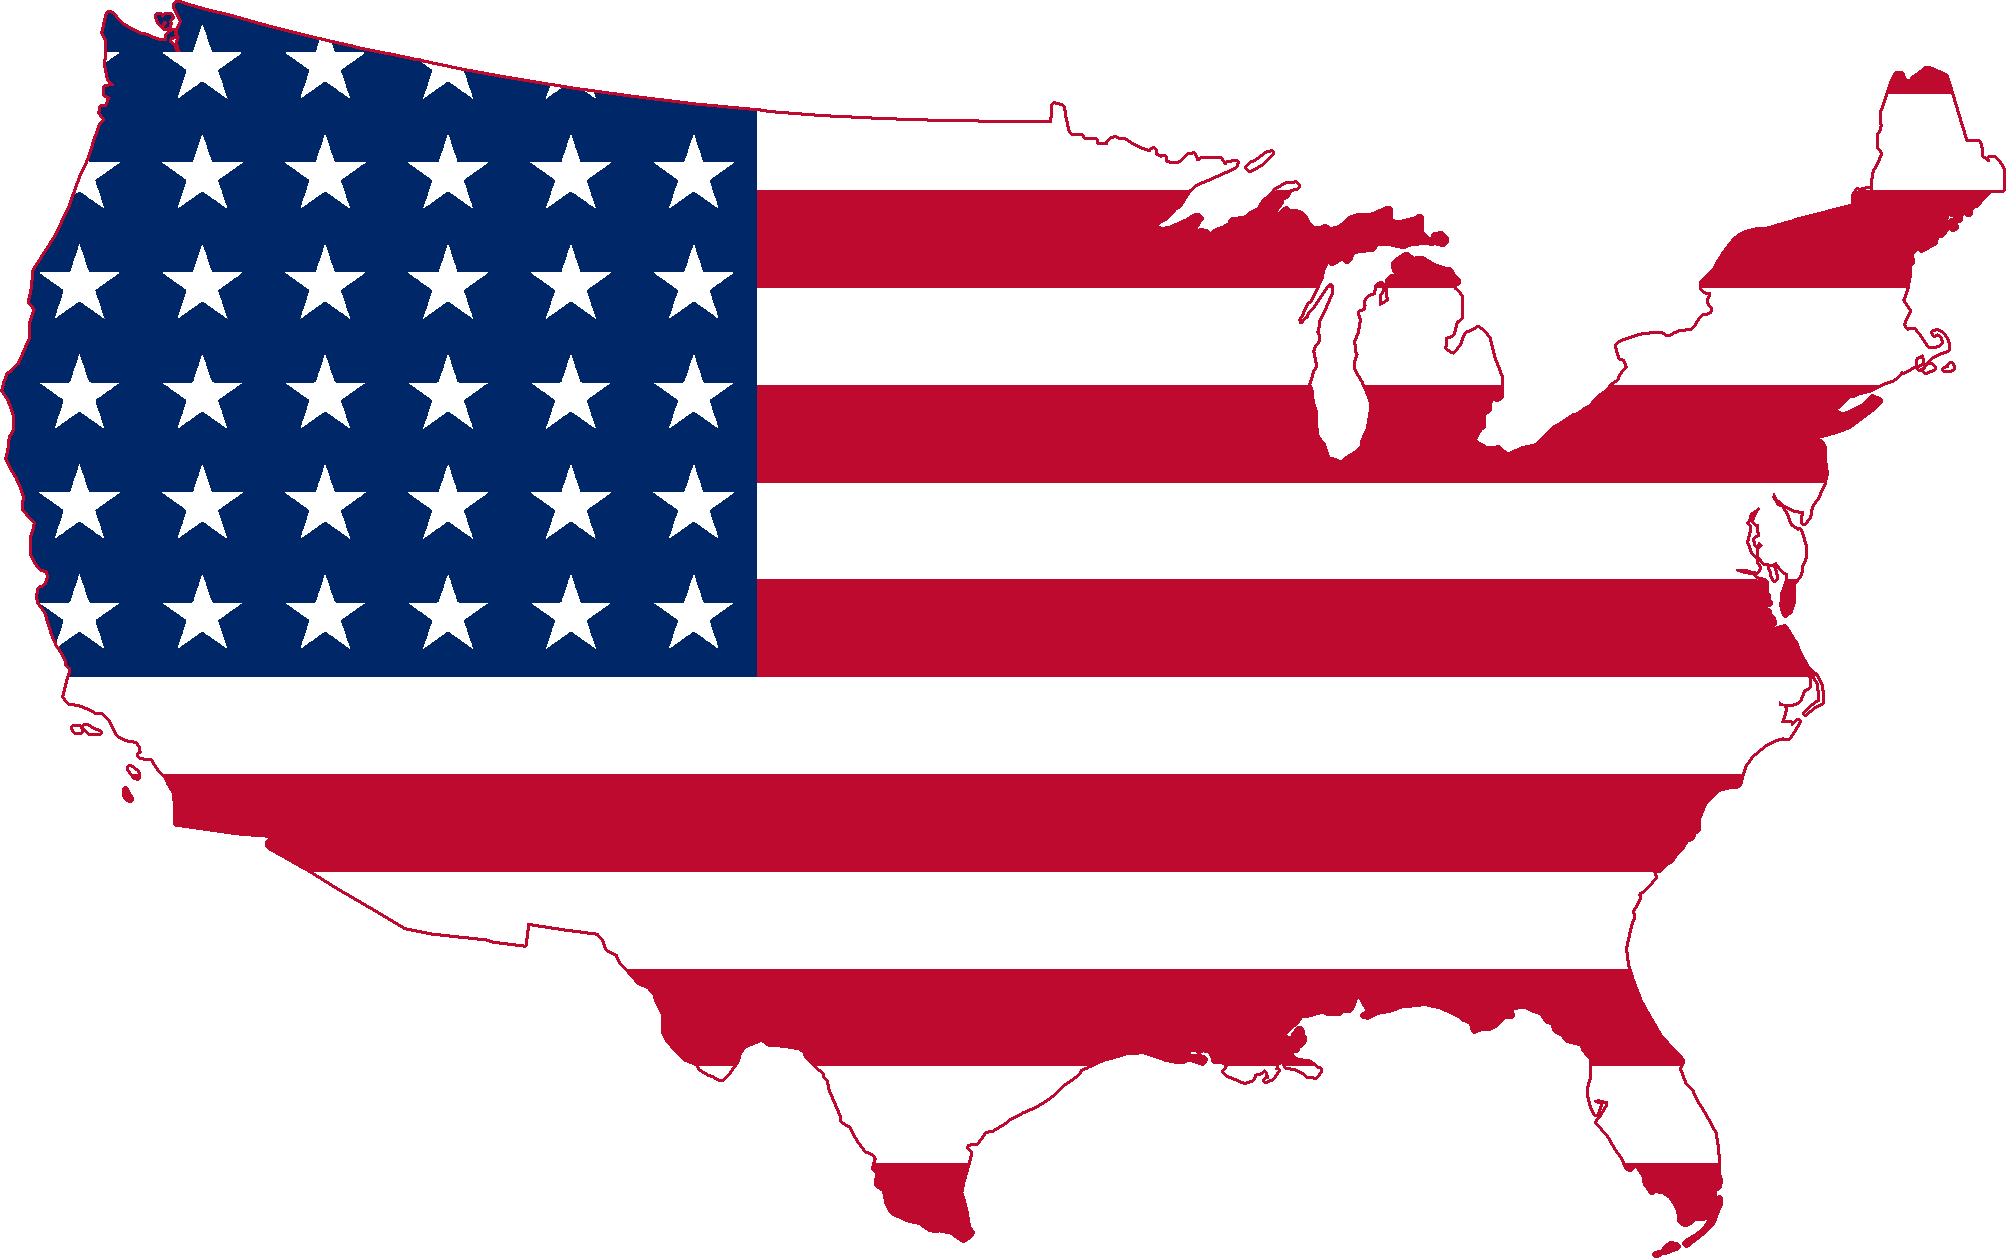 Flag_Map_of_the_United_States_1912_-_1959